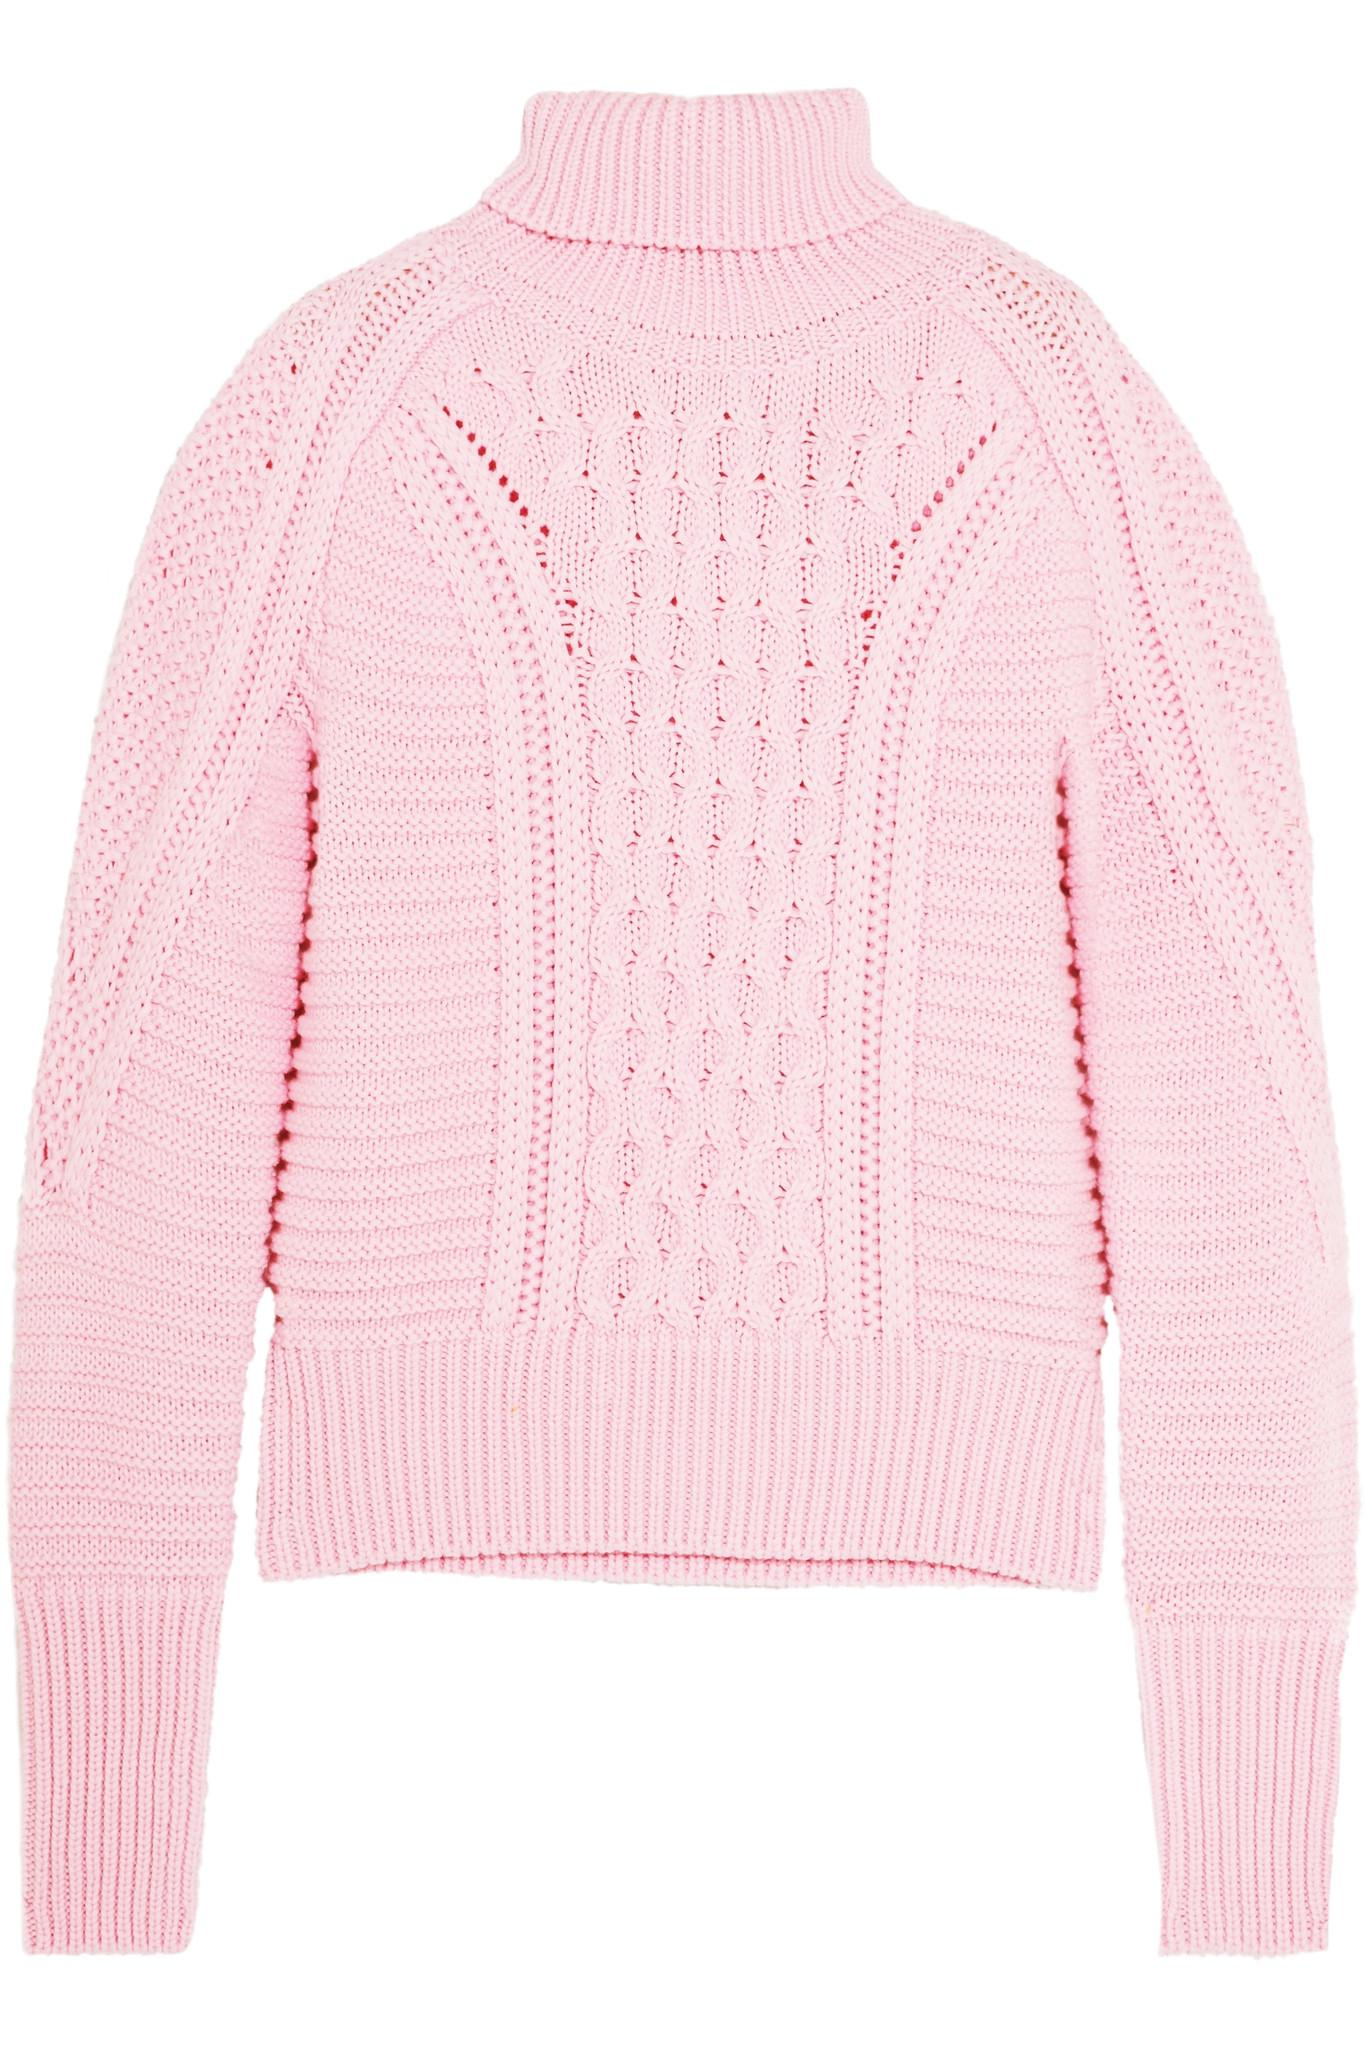 Mary katrantzou Lancelot Cable-knit Wool Turtleneck Sweater in ...